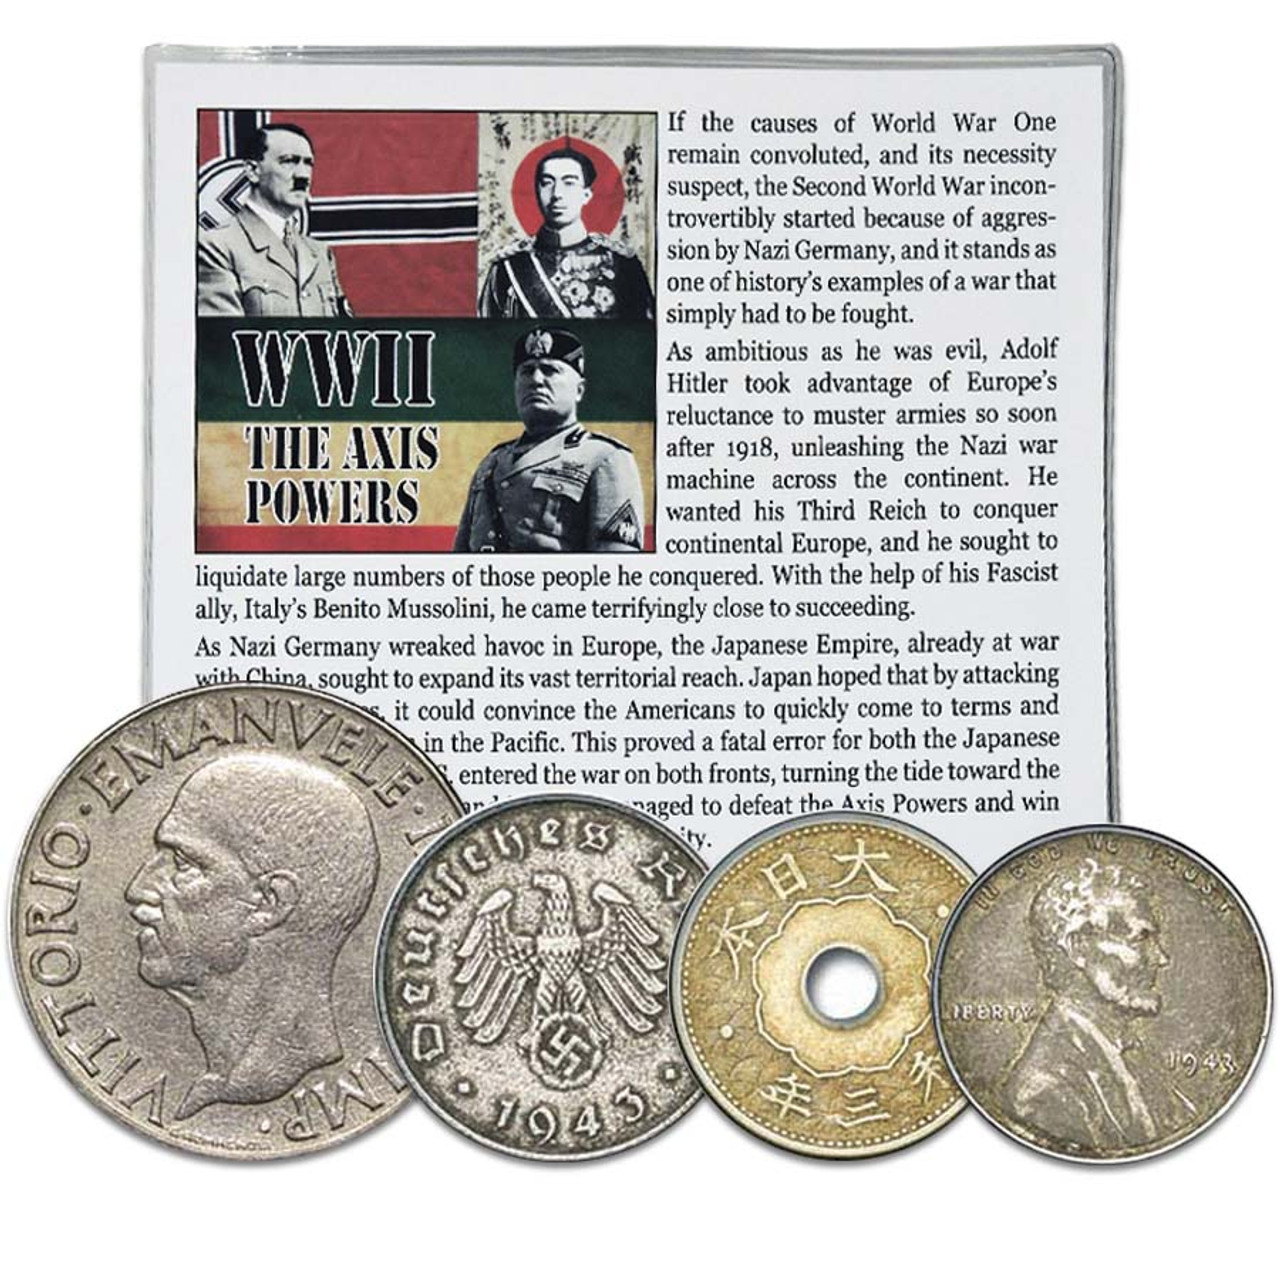 World War II: Axis Powers 4 Coin Collection Image 1